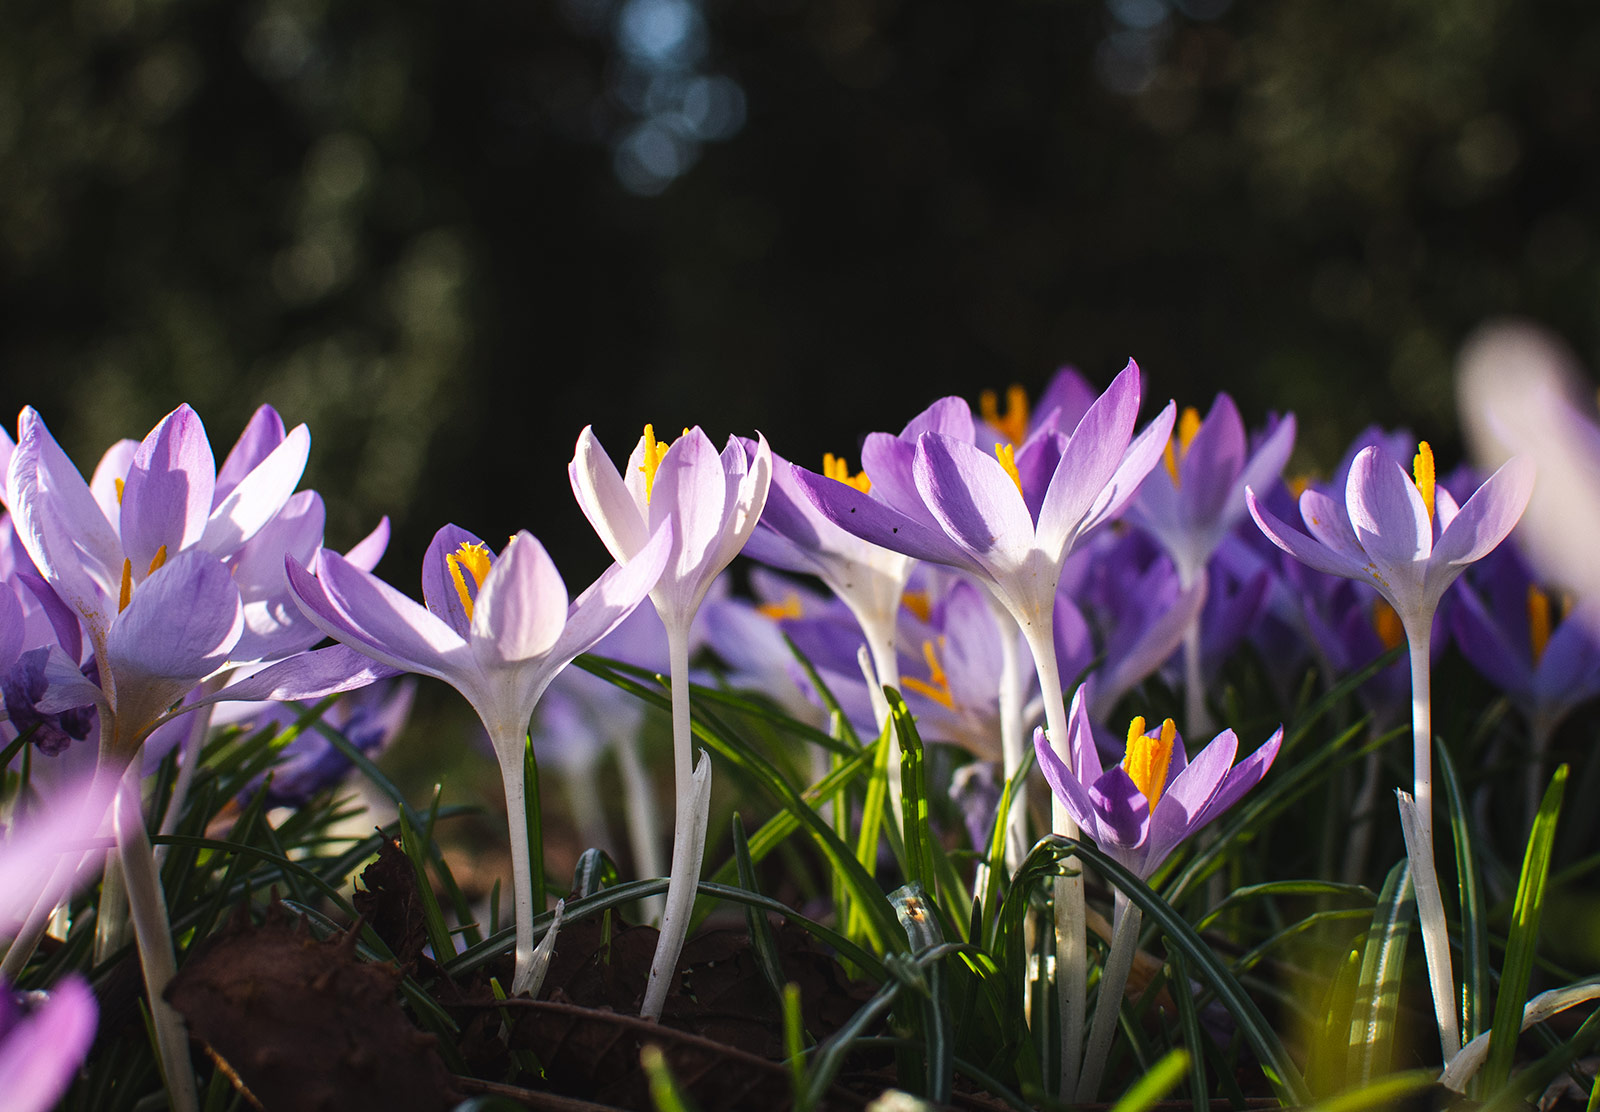 Sun on crocus